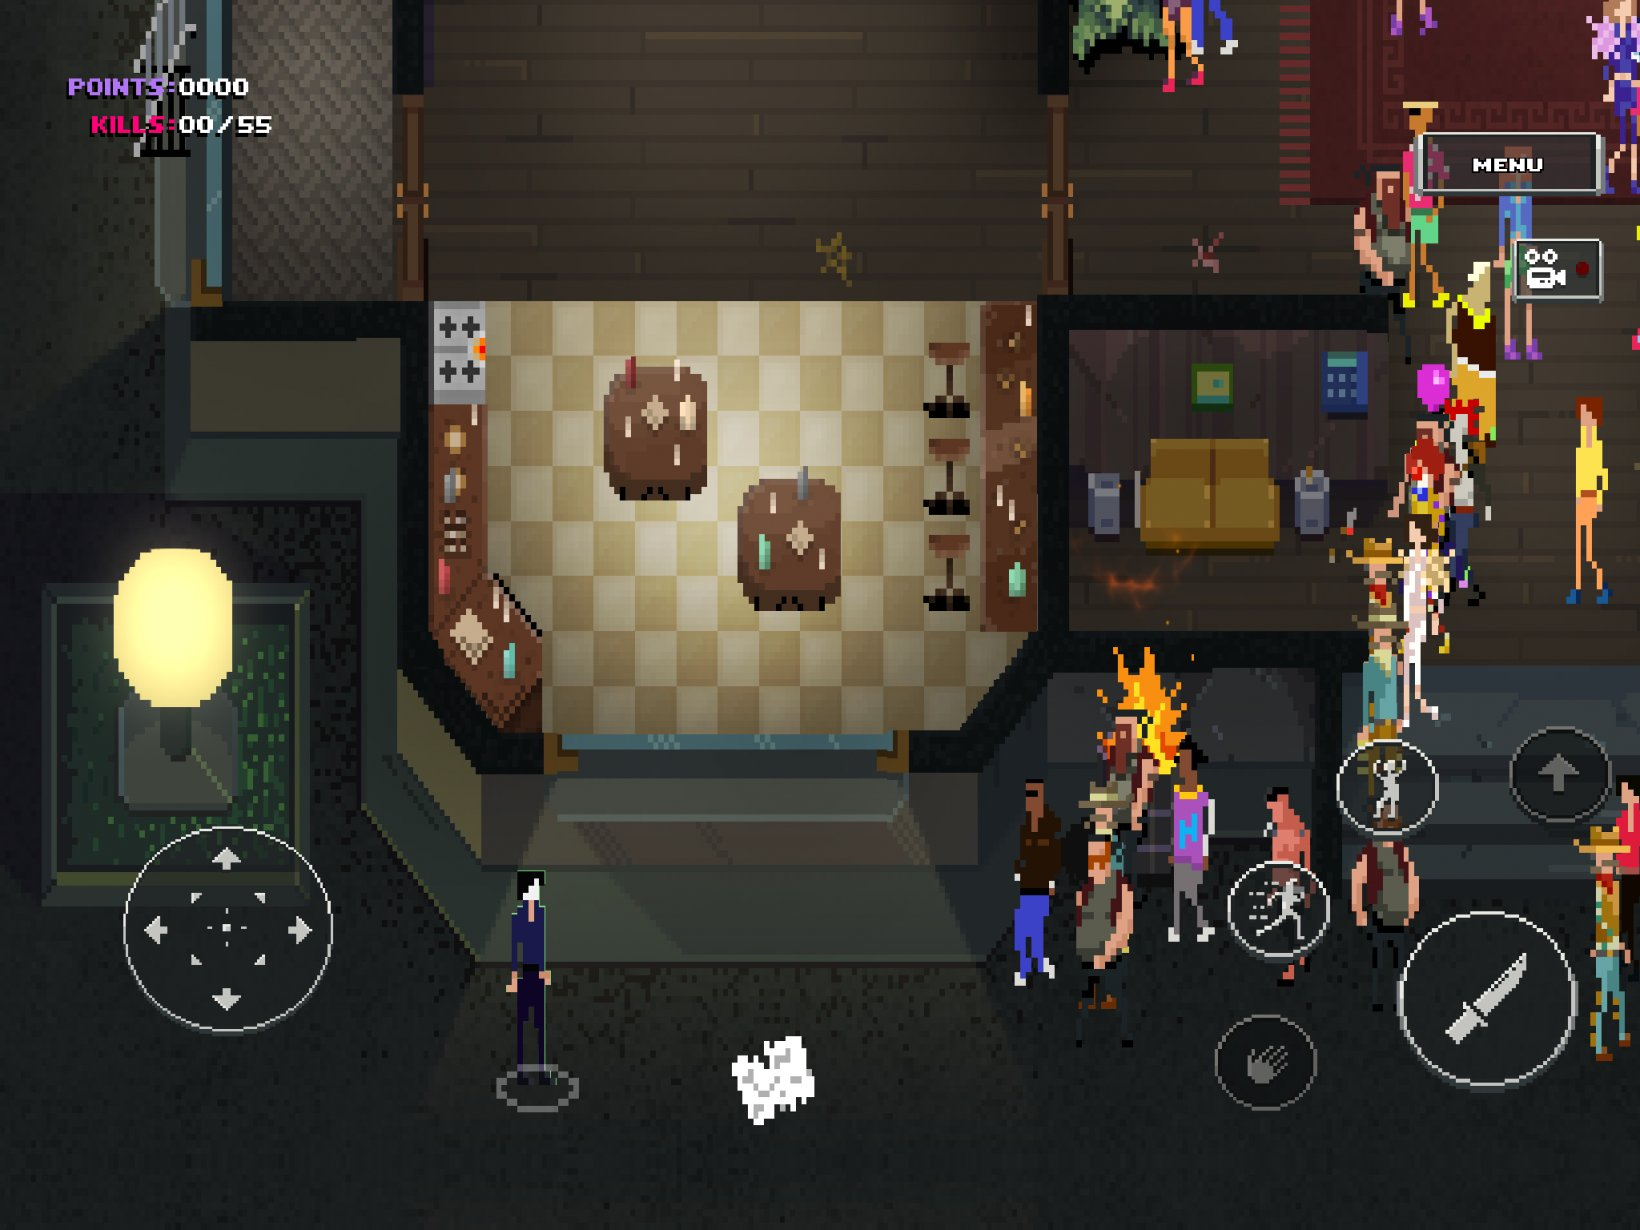 Party Hard Go review - It's Party Hard, but on the go